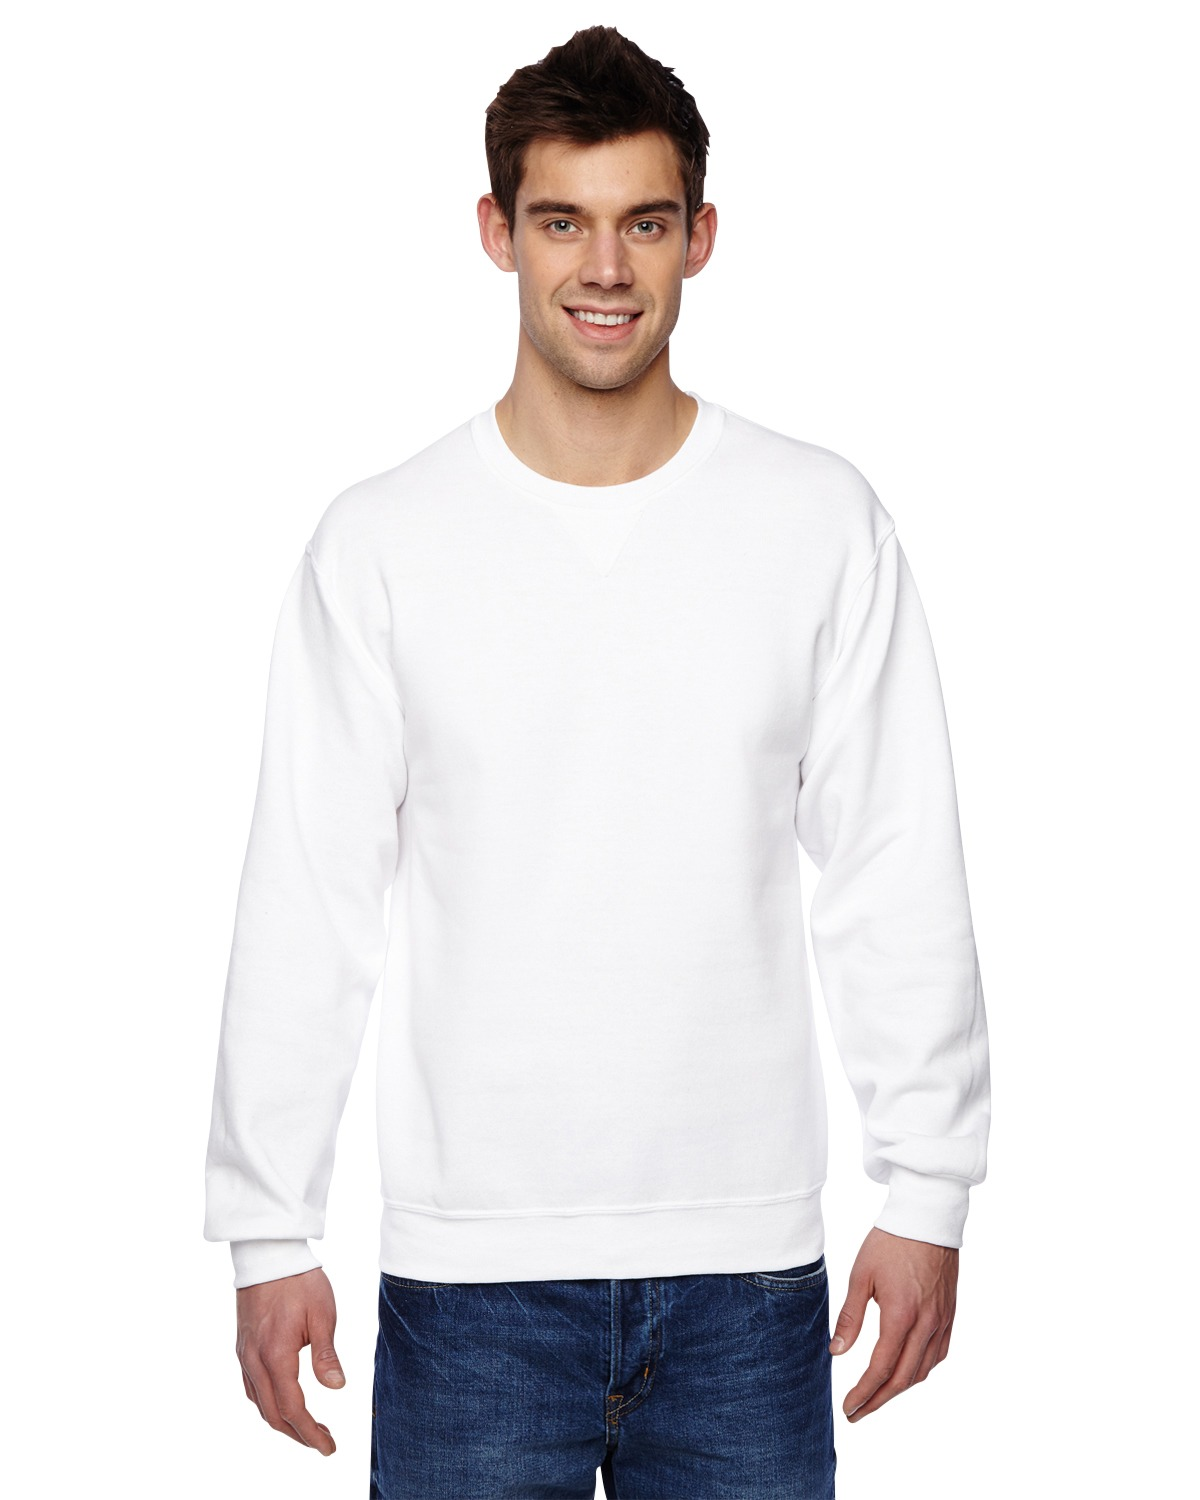 Fruit of the Loom SF72R Adult 7.2 oz. Sofspun Crewneck Sweatshirt at GotApparel